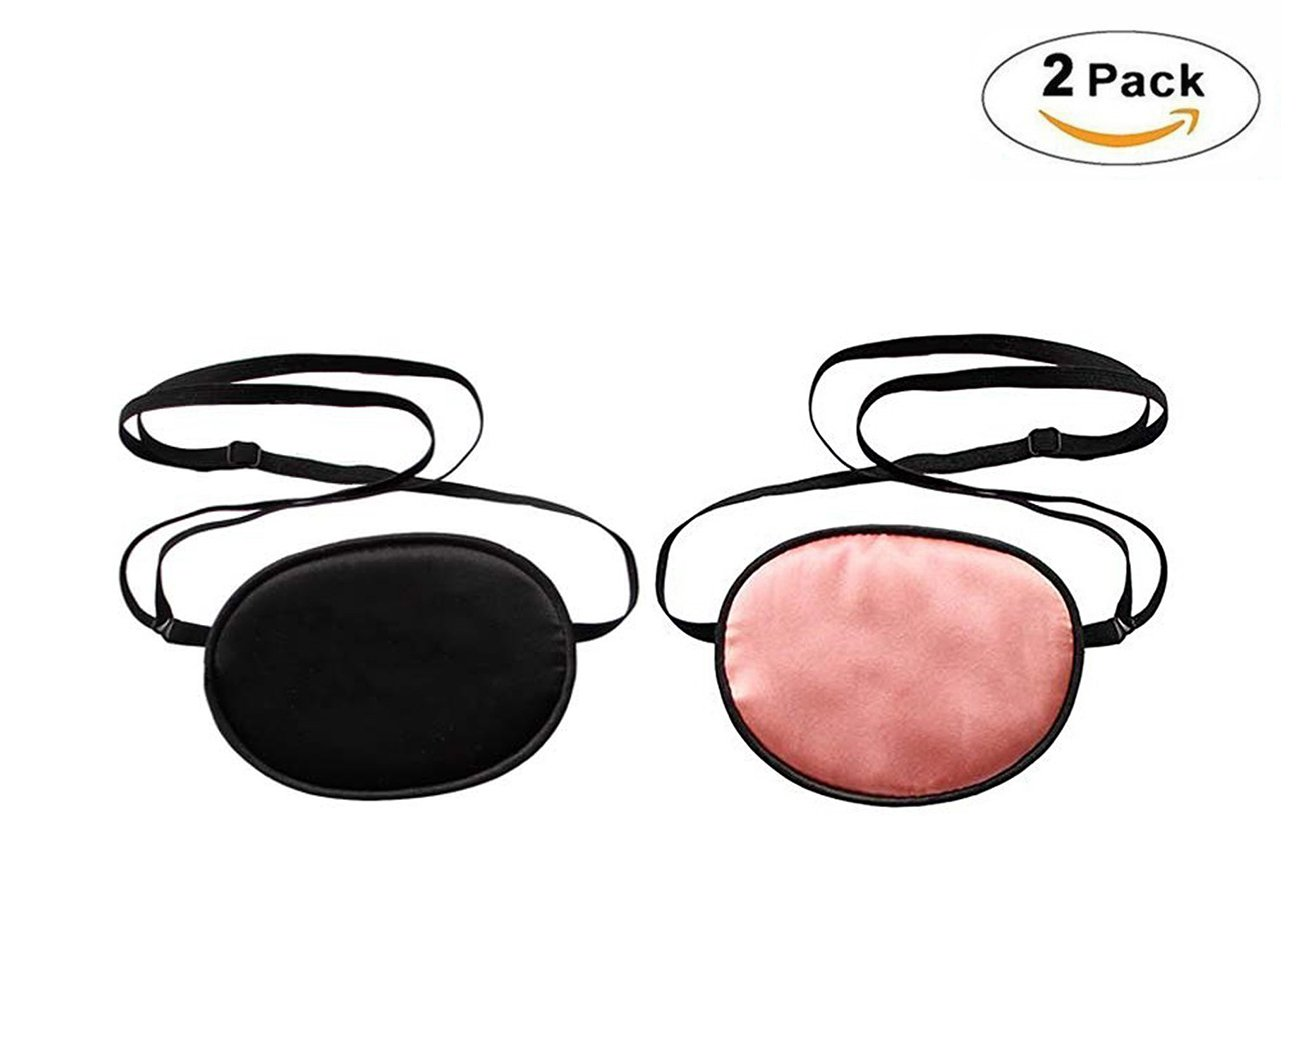 Wommty 2 Pack Silk Eye Patch Elastic Eye Patches Lazy Eye Patches for Child Lazy Eye and Amblyopia Strabismus, No Leakage Smooth Soft and Comfortable, Black& Dark Pink (Child) Wommty EU